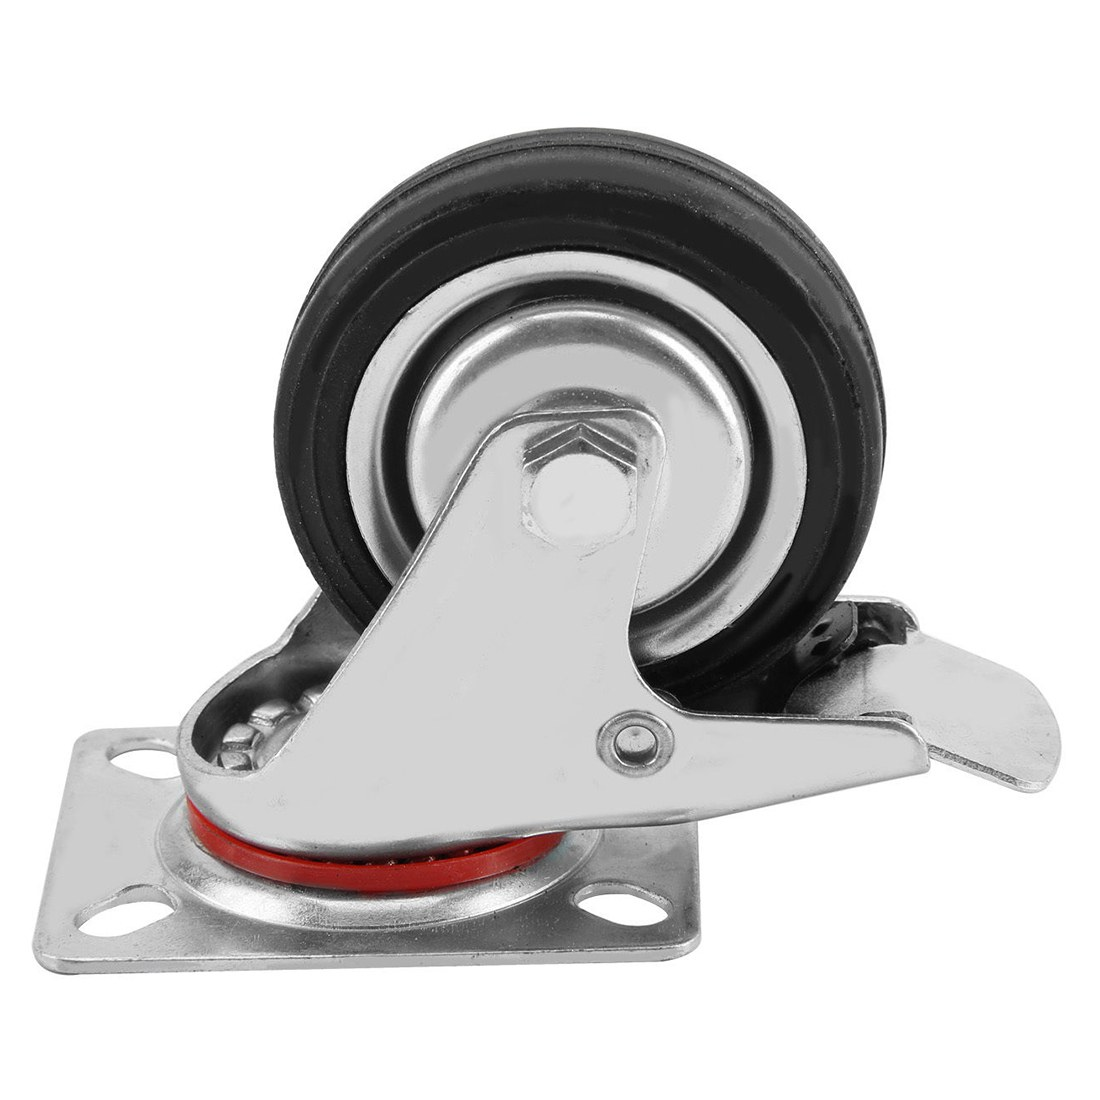 4x75mm New Heavy Duty Rubber Swivel Castor Wheels Brake Trolley Furniture Caster new  3   swivel wheels caster industrial